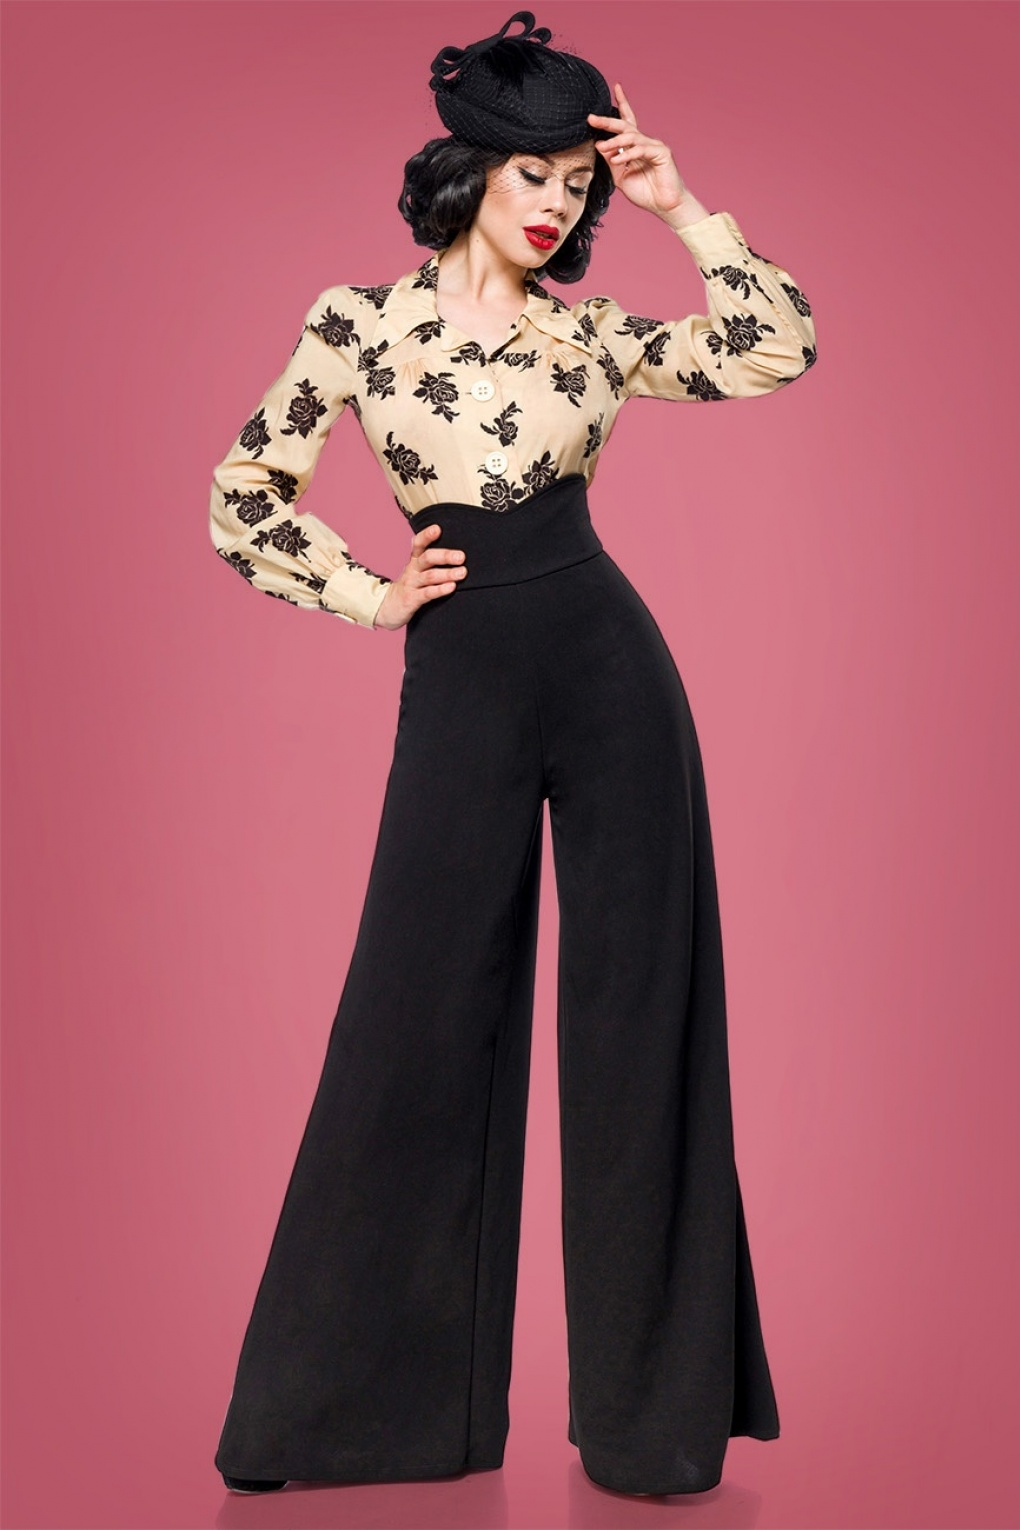 Vintage High Waisted Trousers, Sailor Pants, Jeans 40s Marlene Trousers in Black £42.79 AT vintagedancer.com